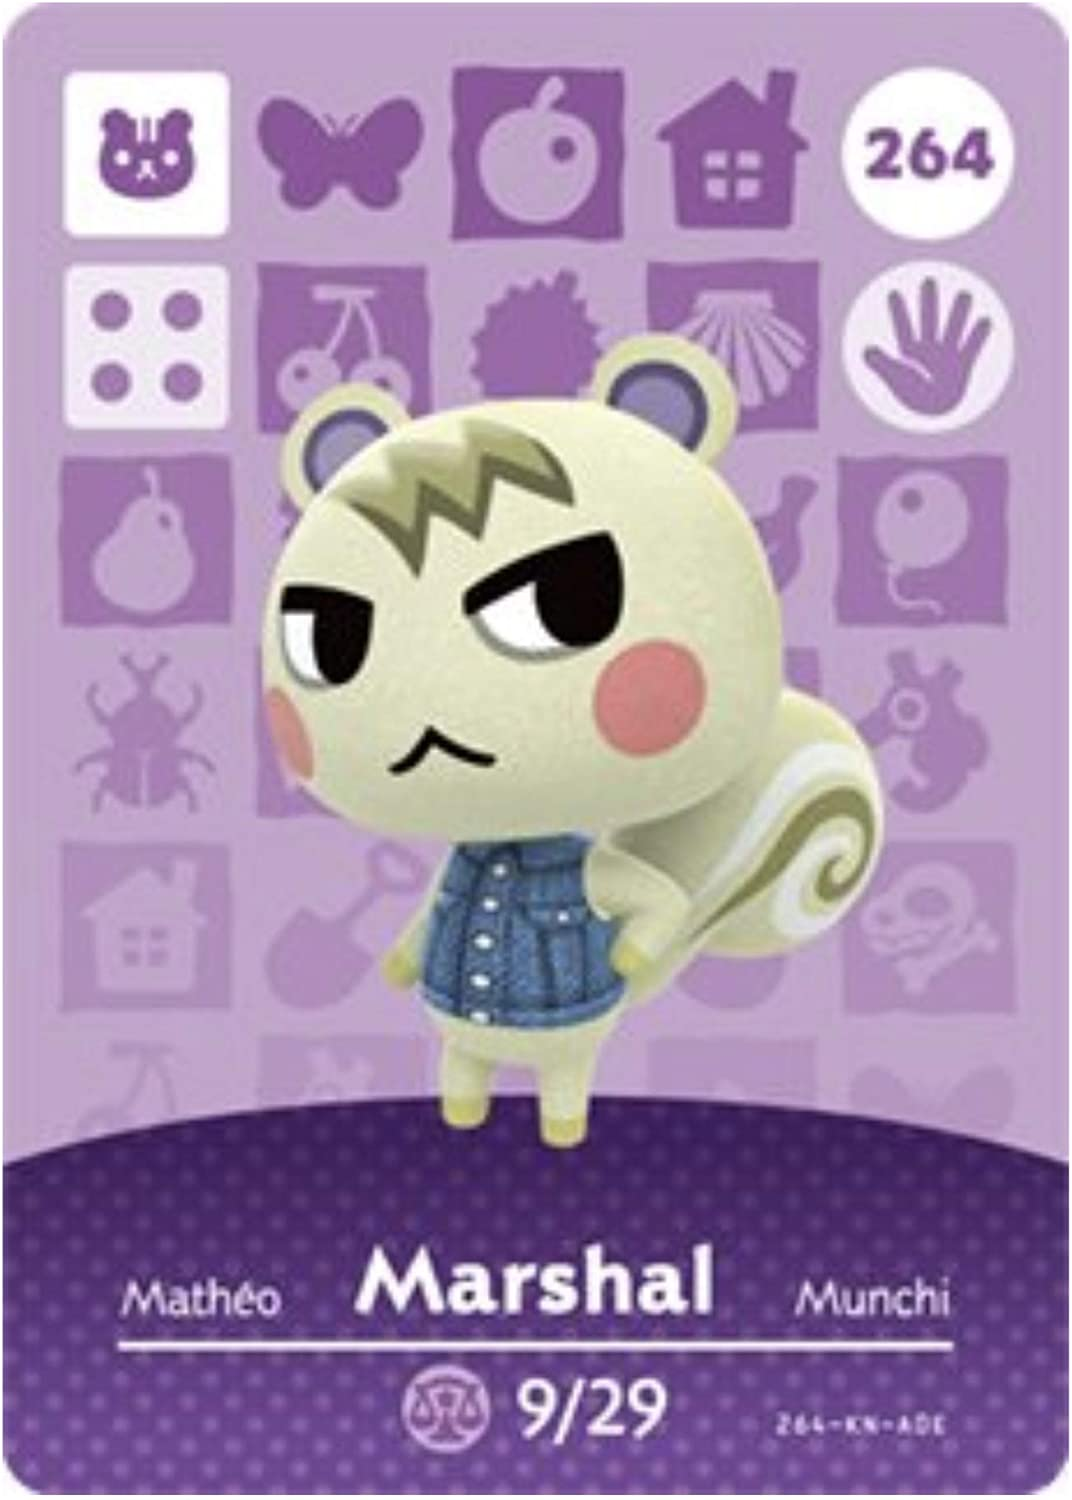 No. 264 Marshal Nintendo Animal Crossing Amiibo Cards Series 3. Third Party NFC Card. Water Resistant